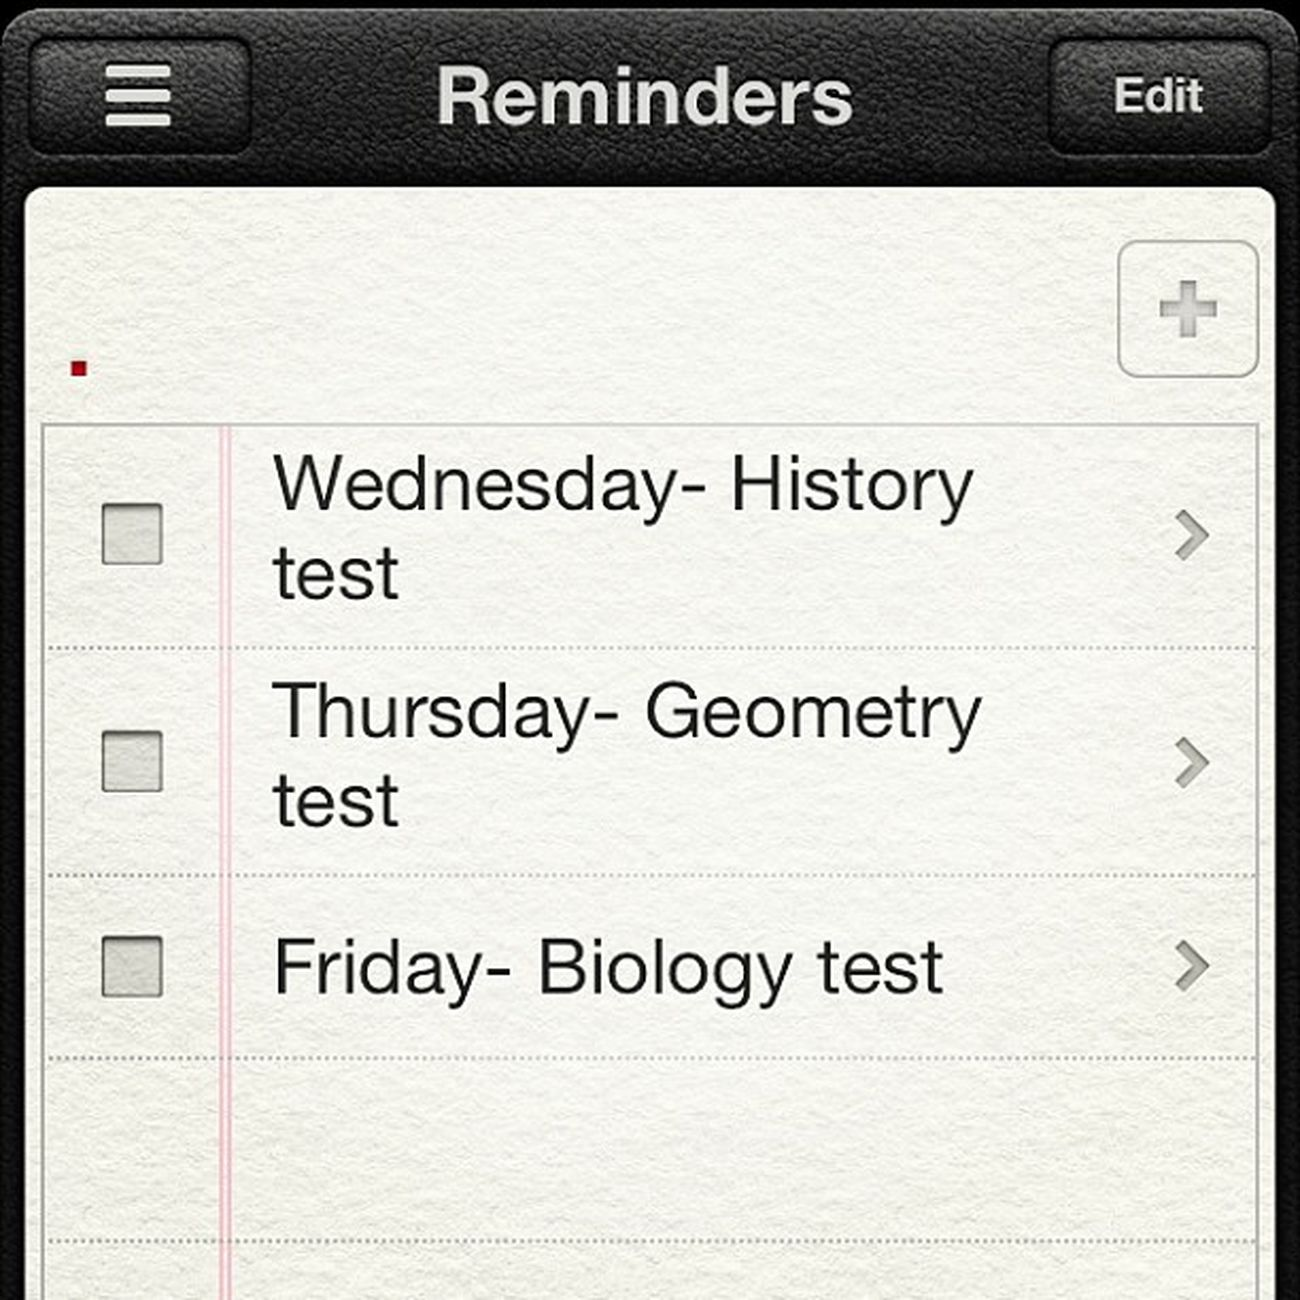 What my week consists of!?Whoo Testaftertest Yah Wednesday thursday and friday fun history geometry biology